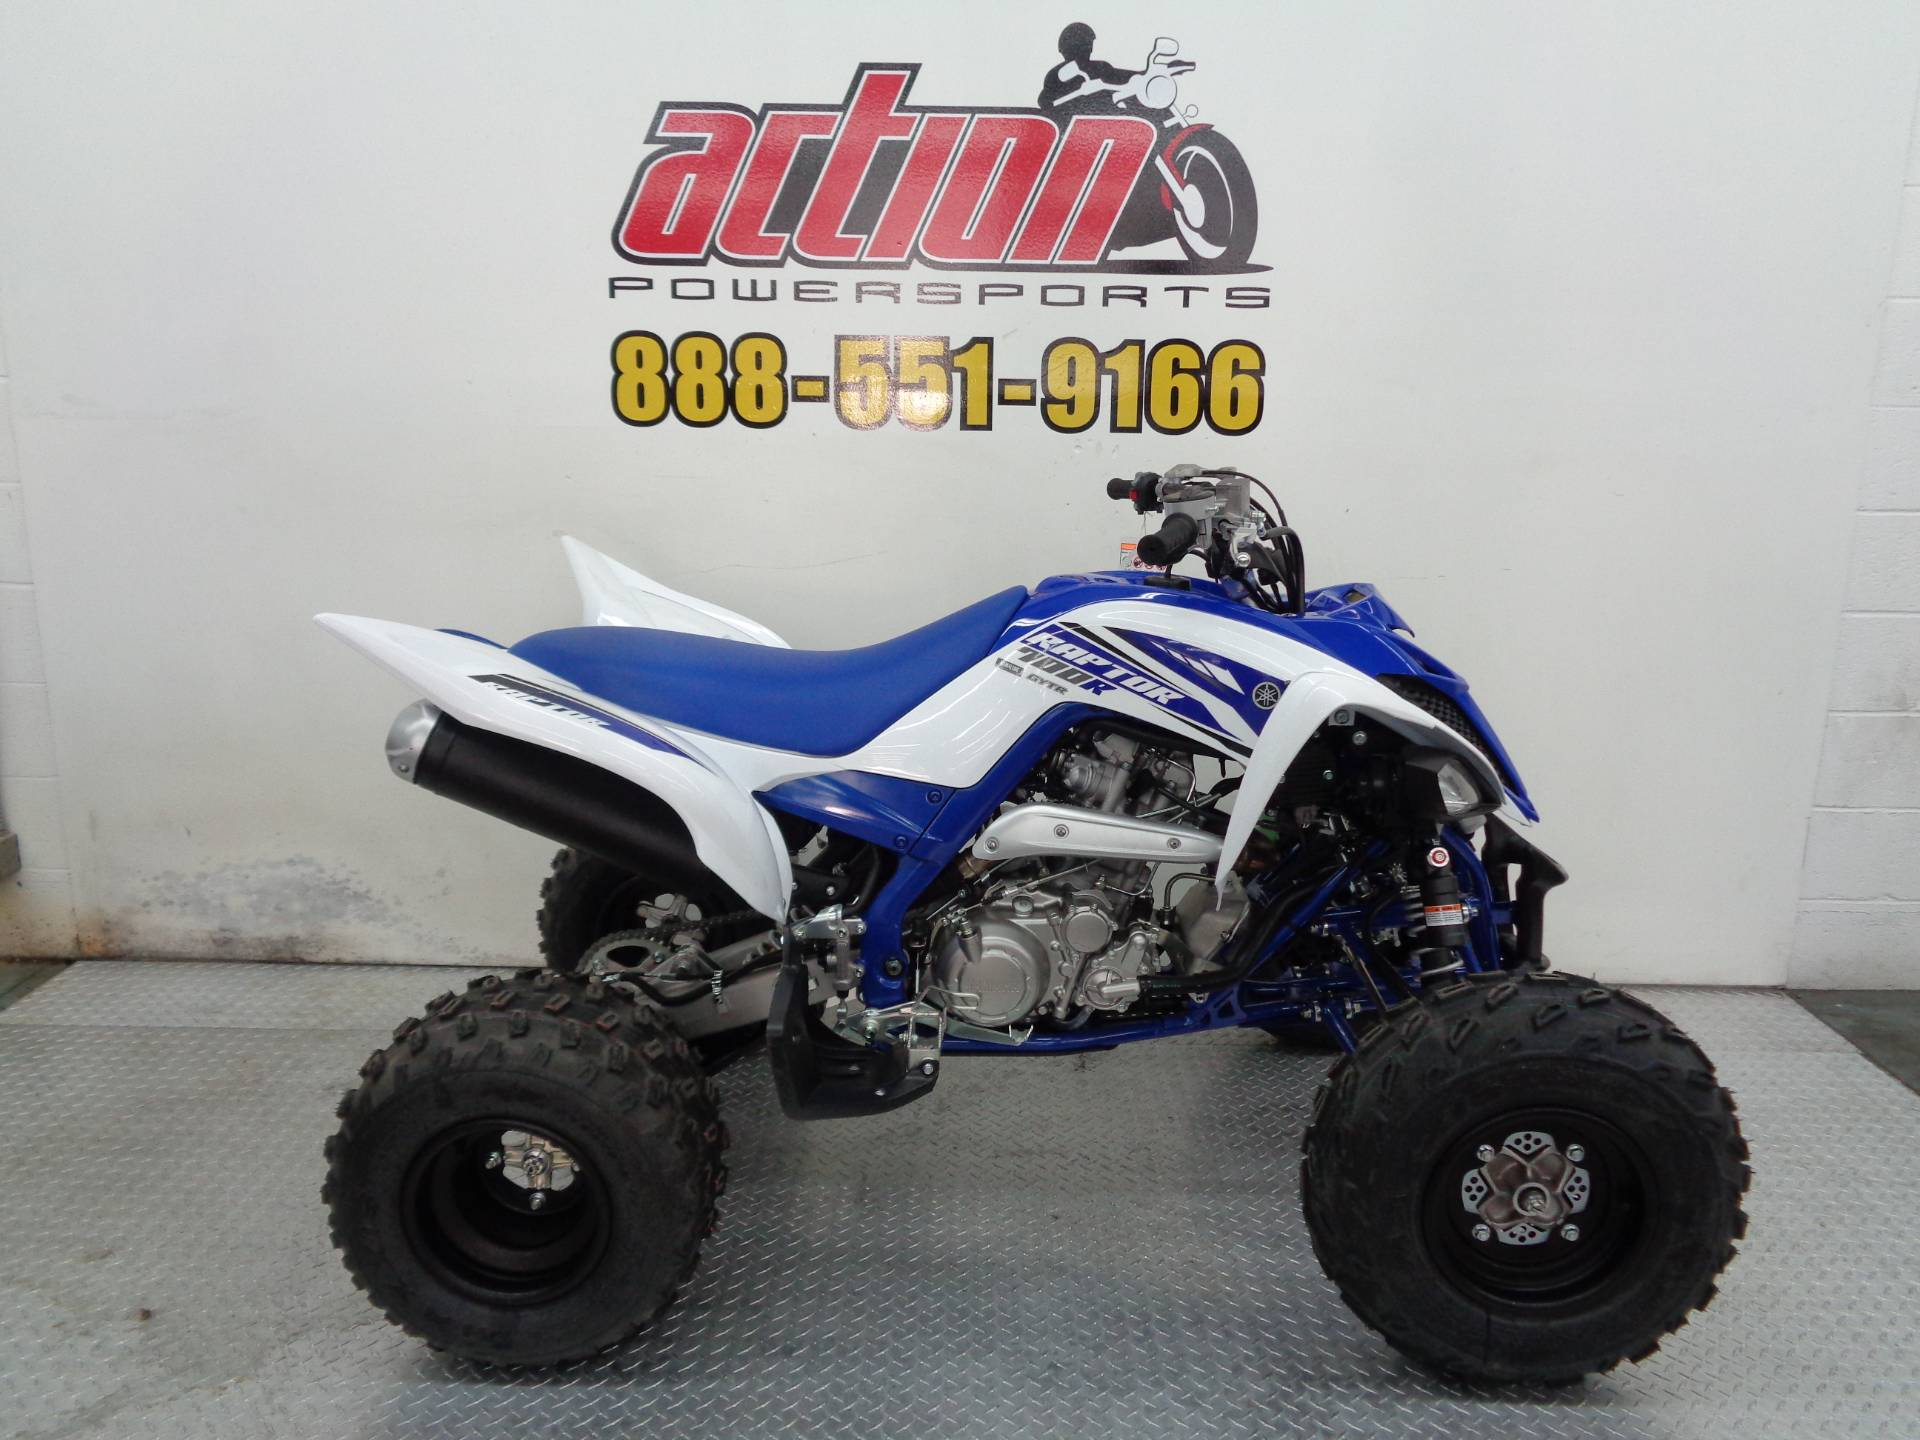 2017 yamaha raptor 700r for sale for Yamaha raptor 700r for sale